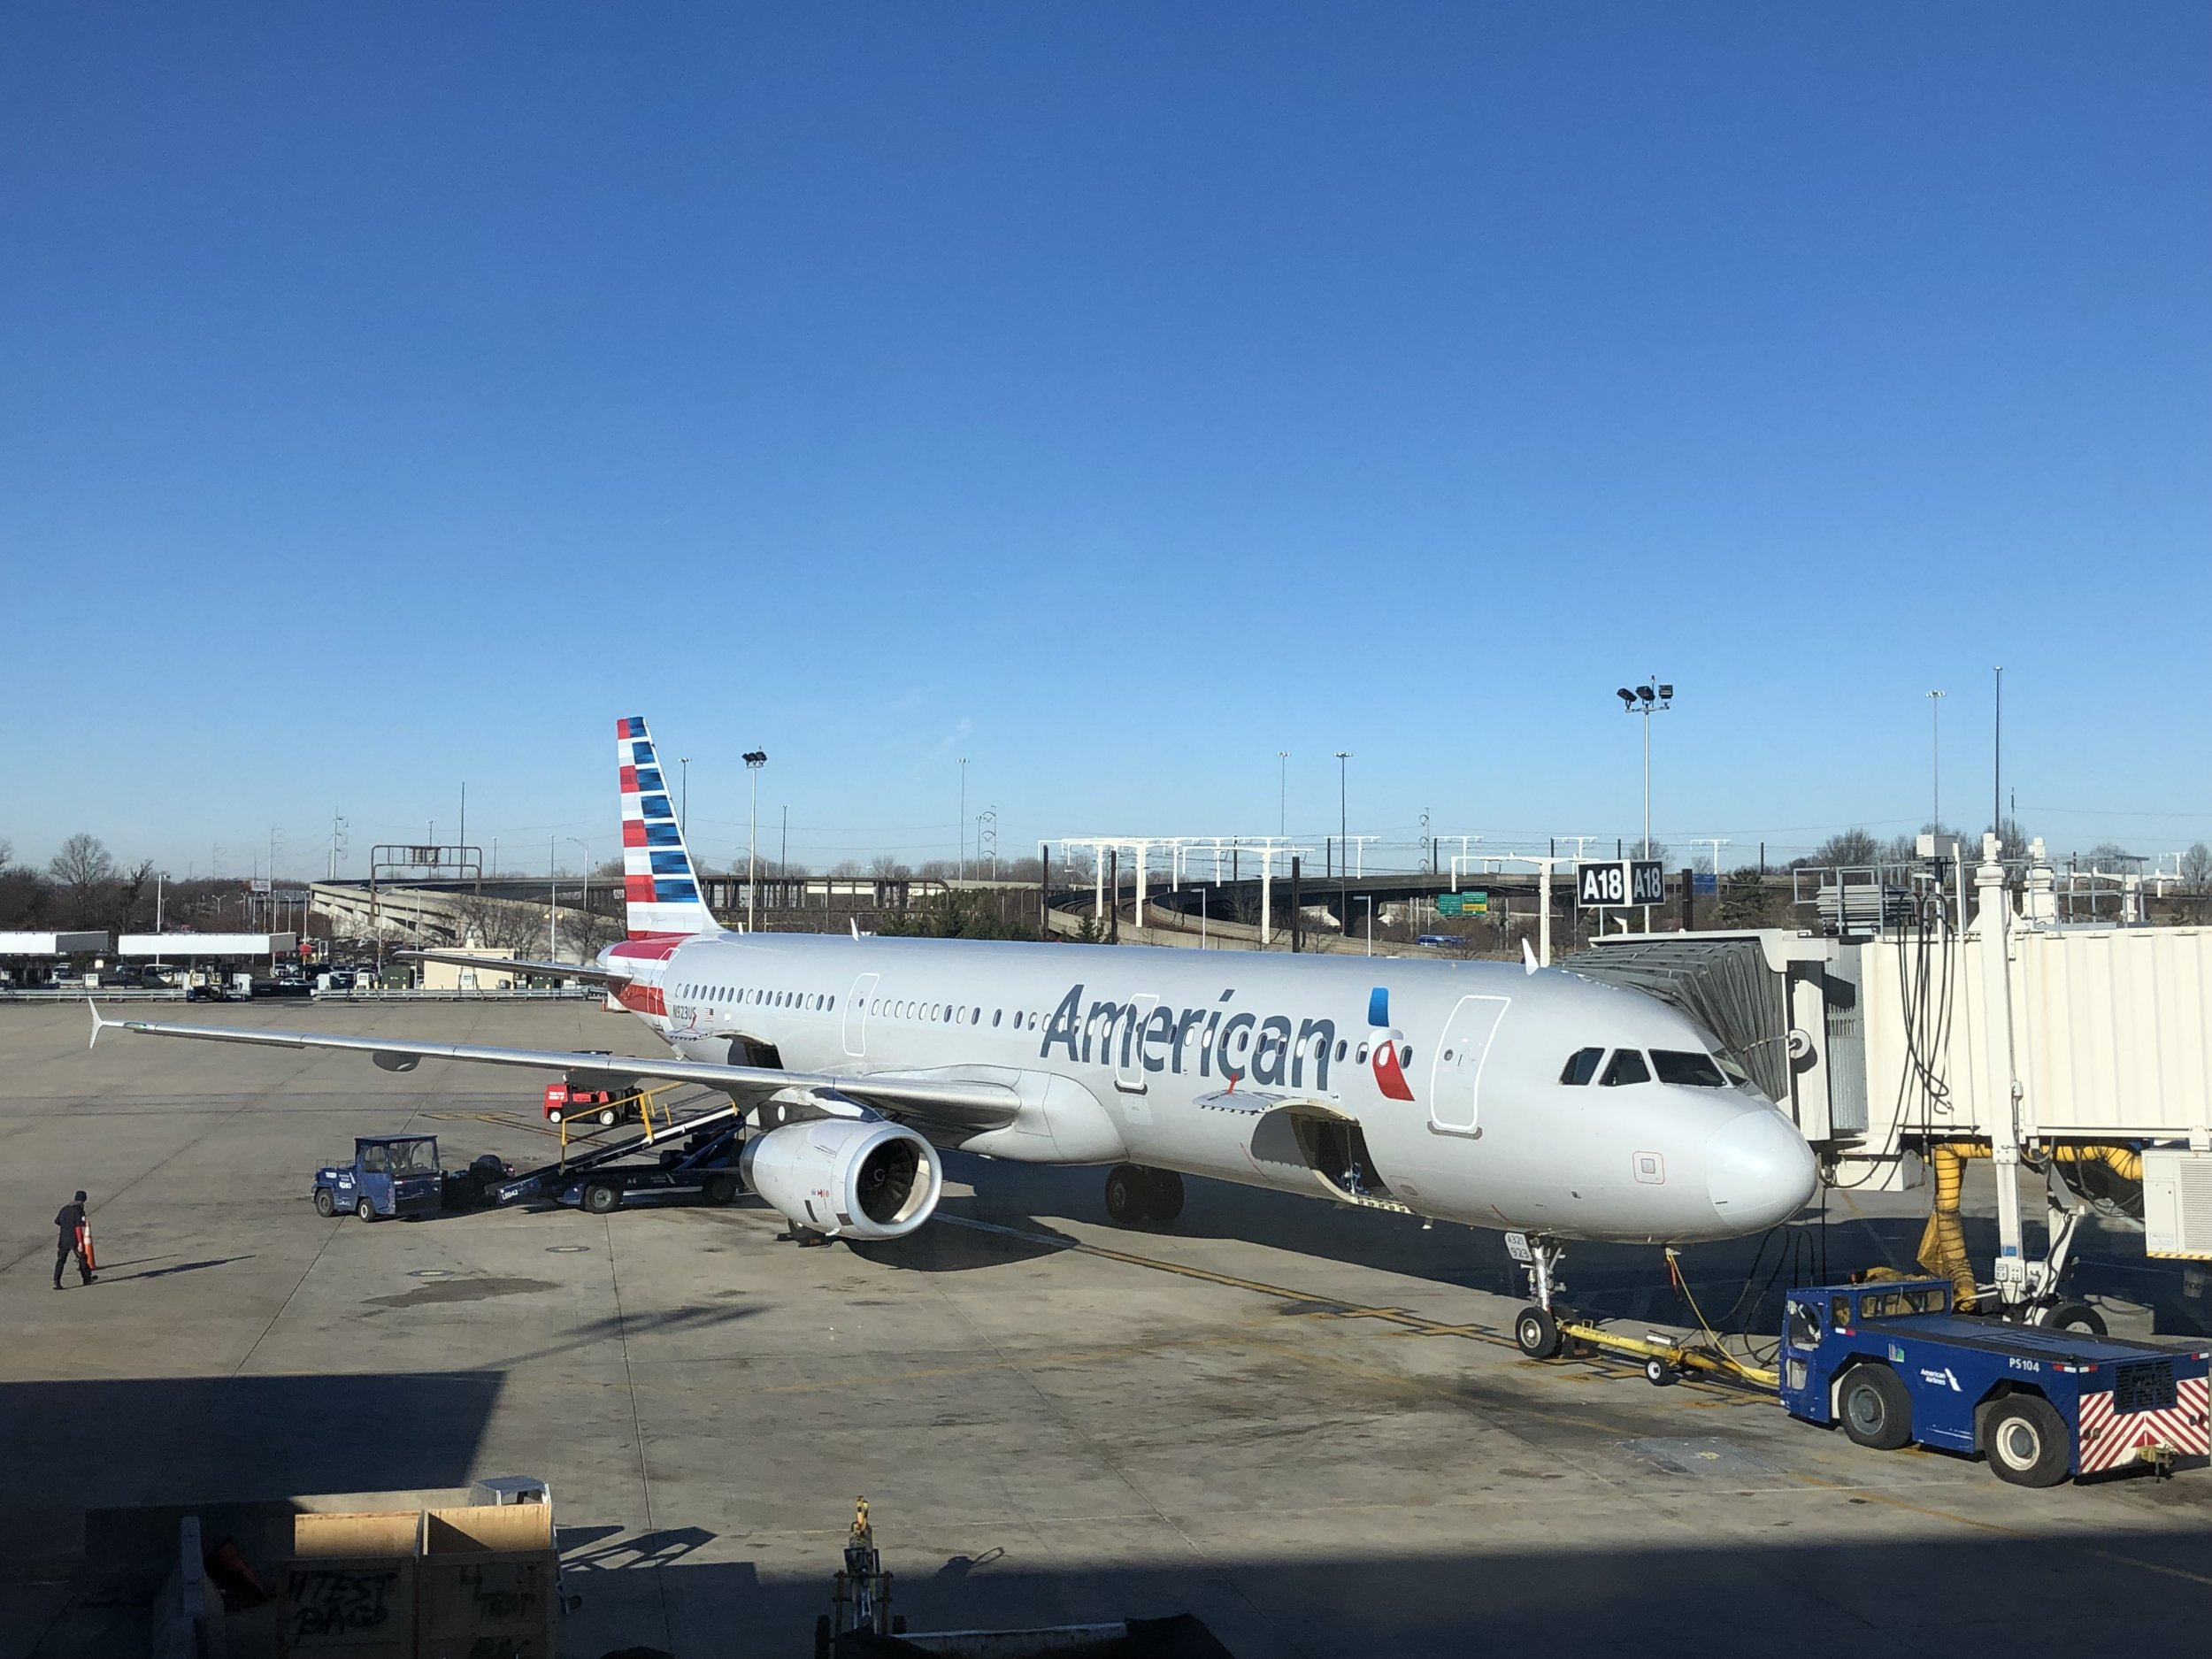 Mother and son with genetic skin condition kicked off American Airlines flight